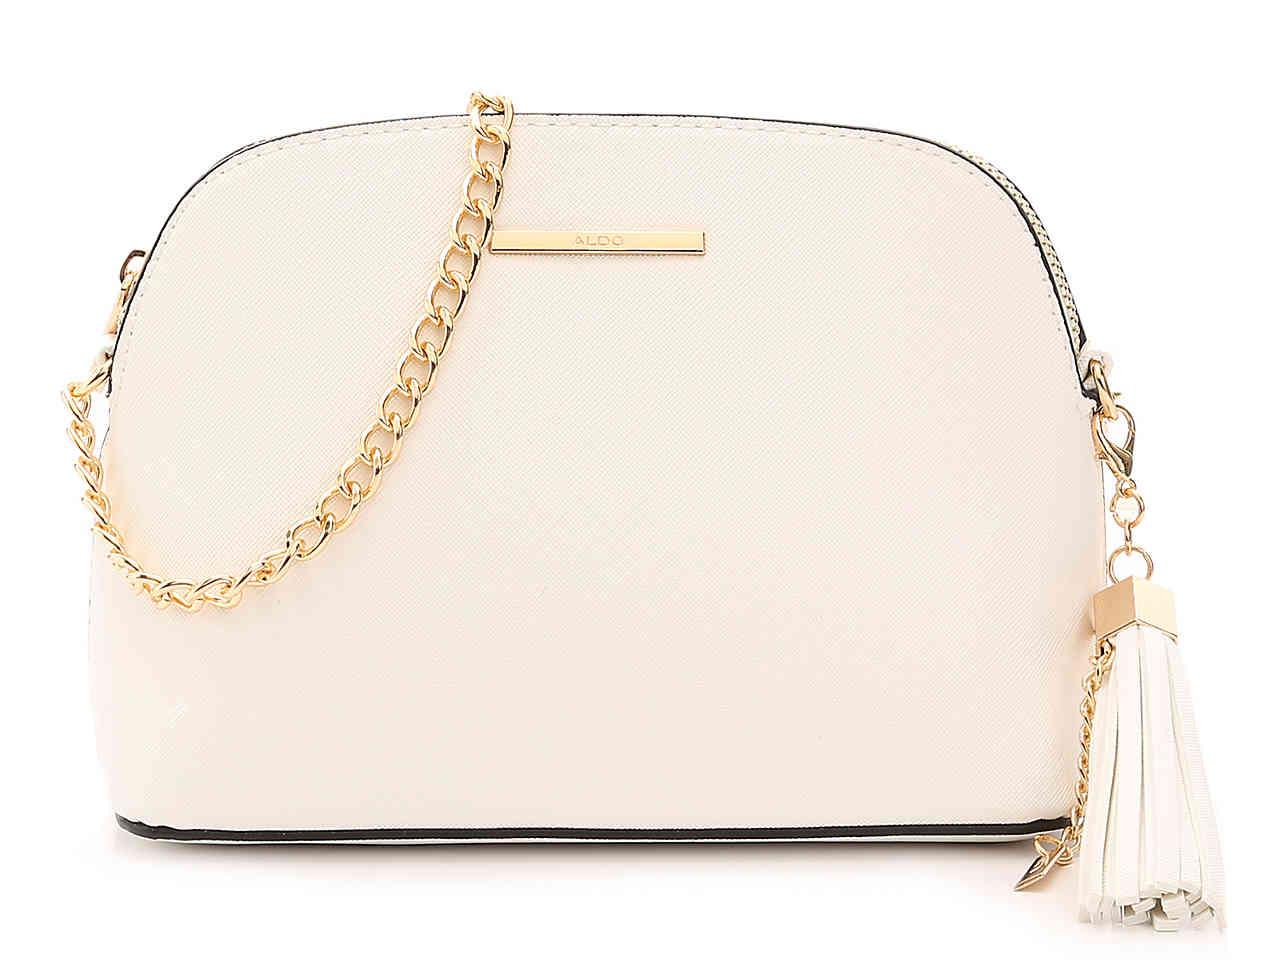 Lyst - ALDO Elroodie Crossbody Bag in White d31d681e02fa4